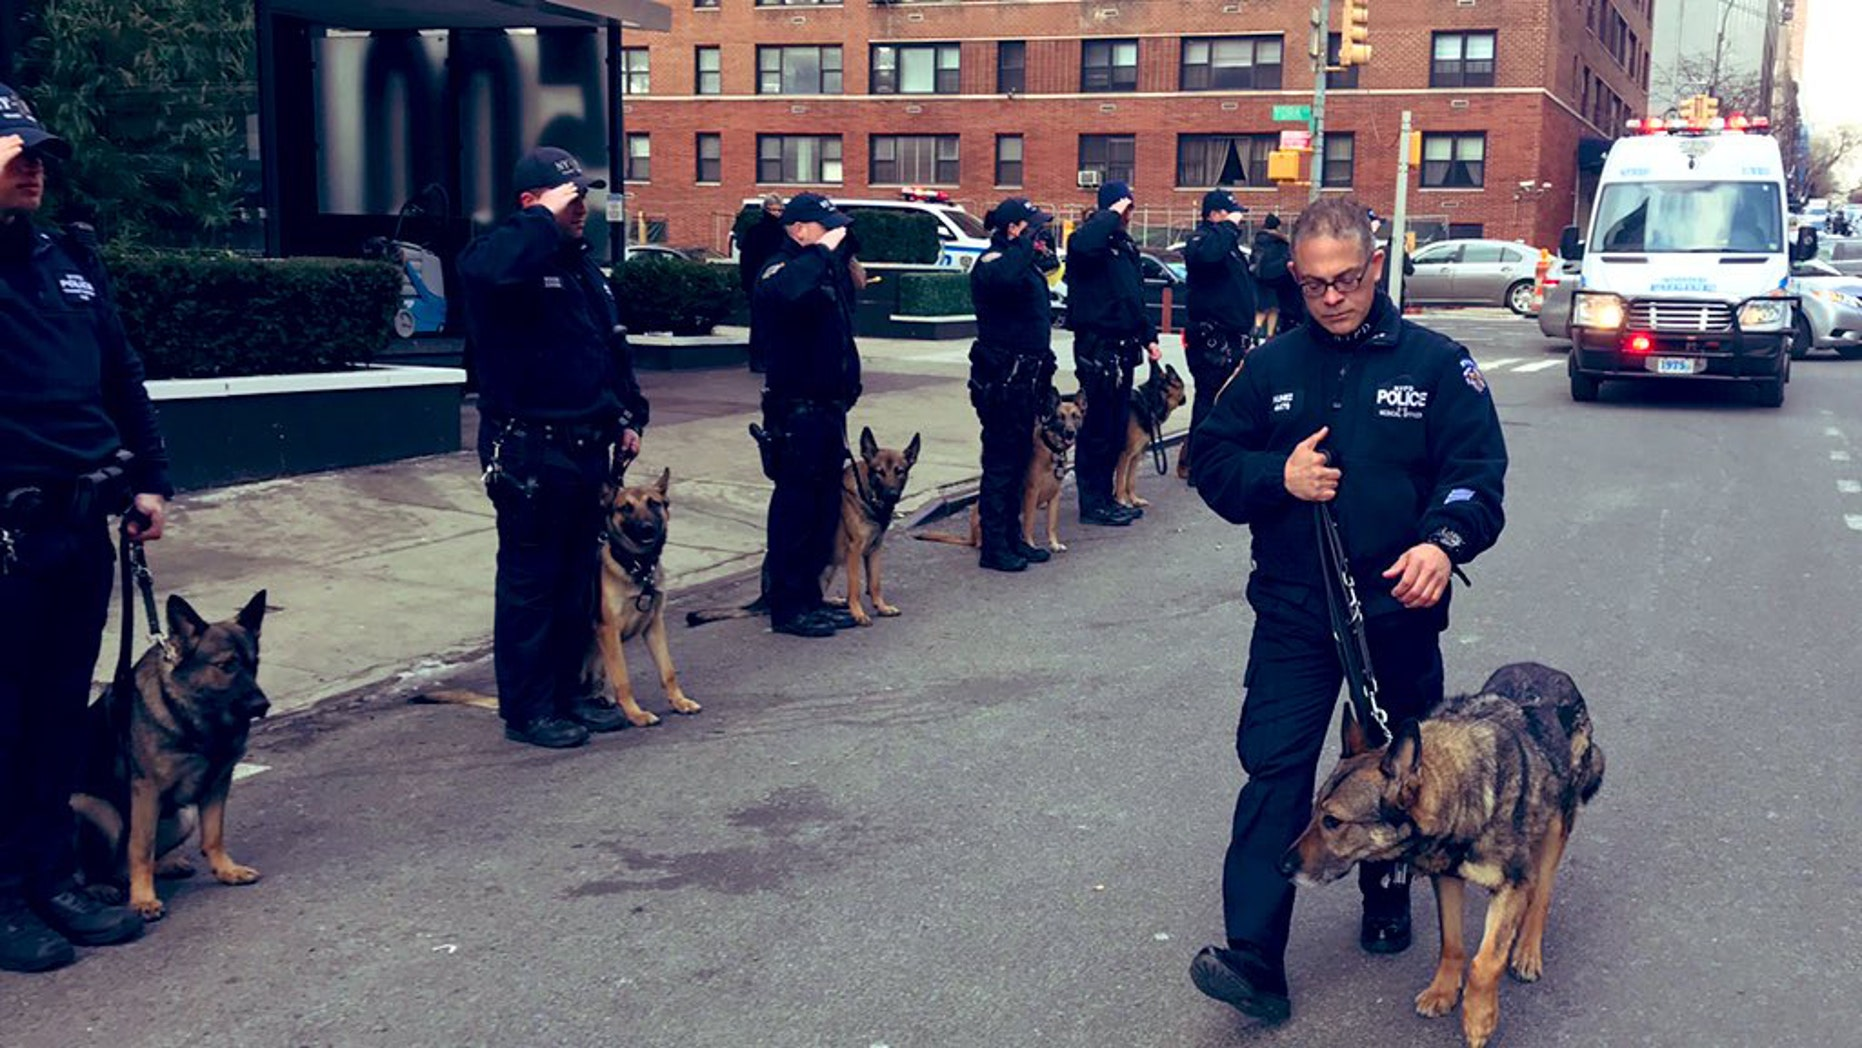 The New York Police Department honored one of its own, Transit Canine Axle, with one final salute. (NYPD)